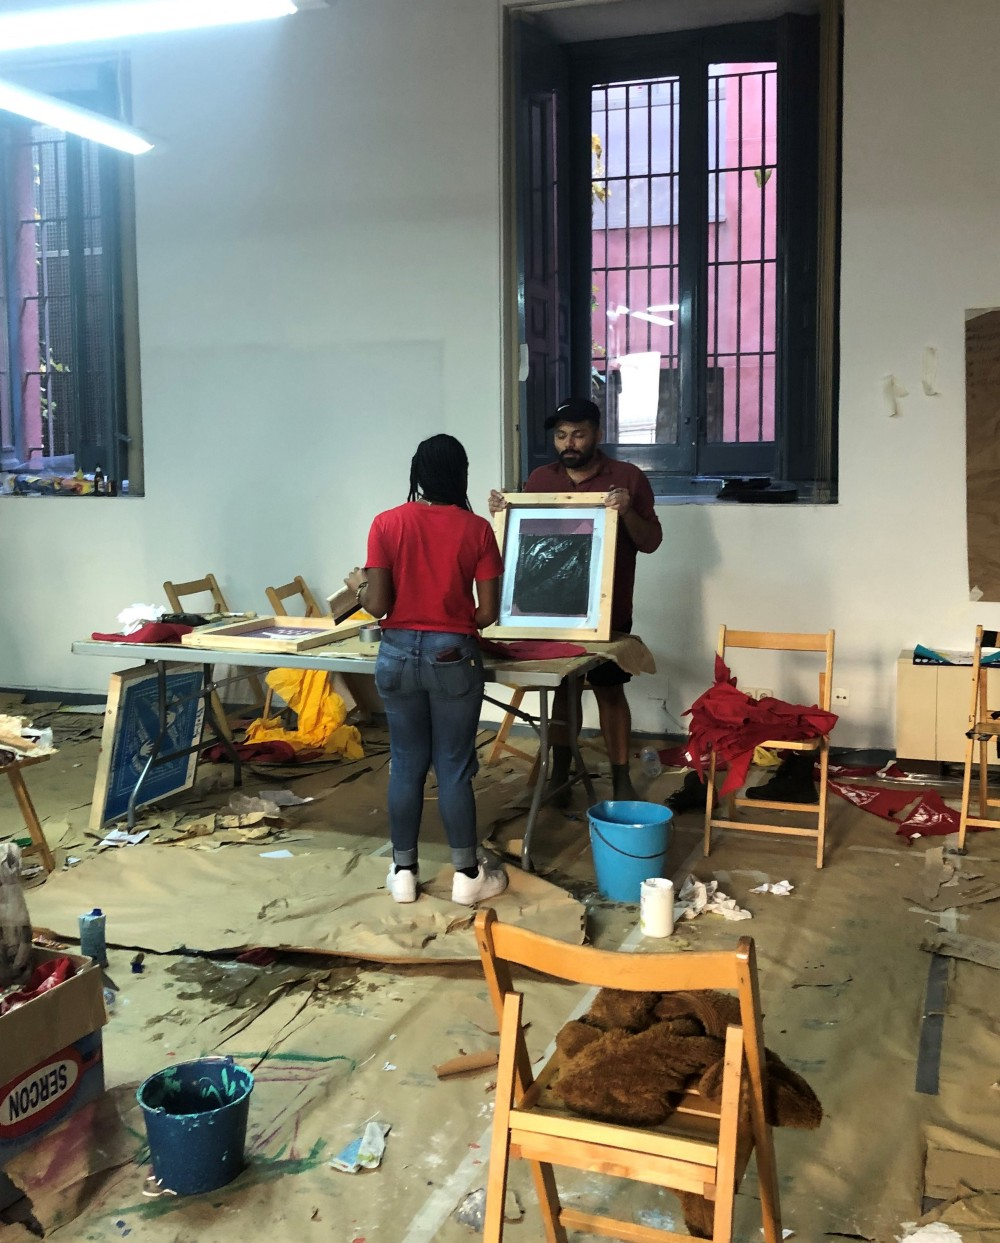 Two activists, Nyiesha and Carlos, creating protest art in a workshop